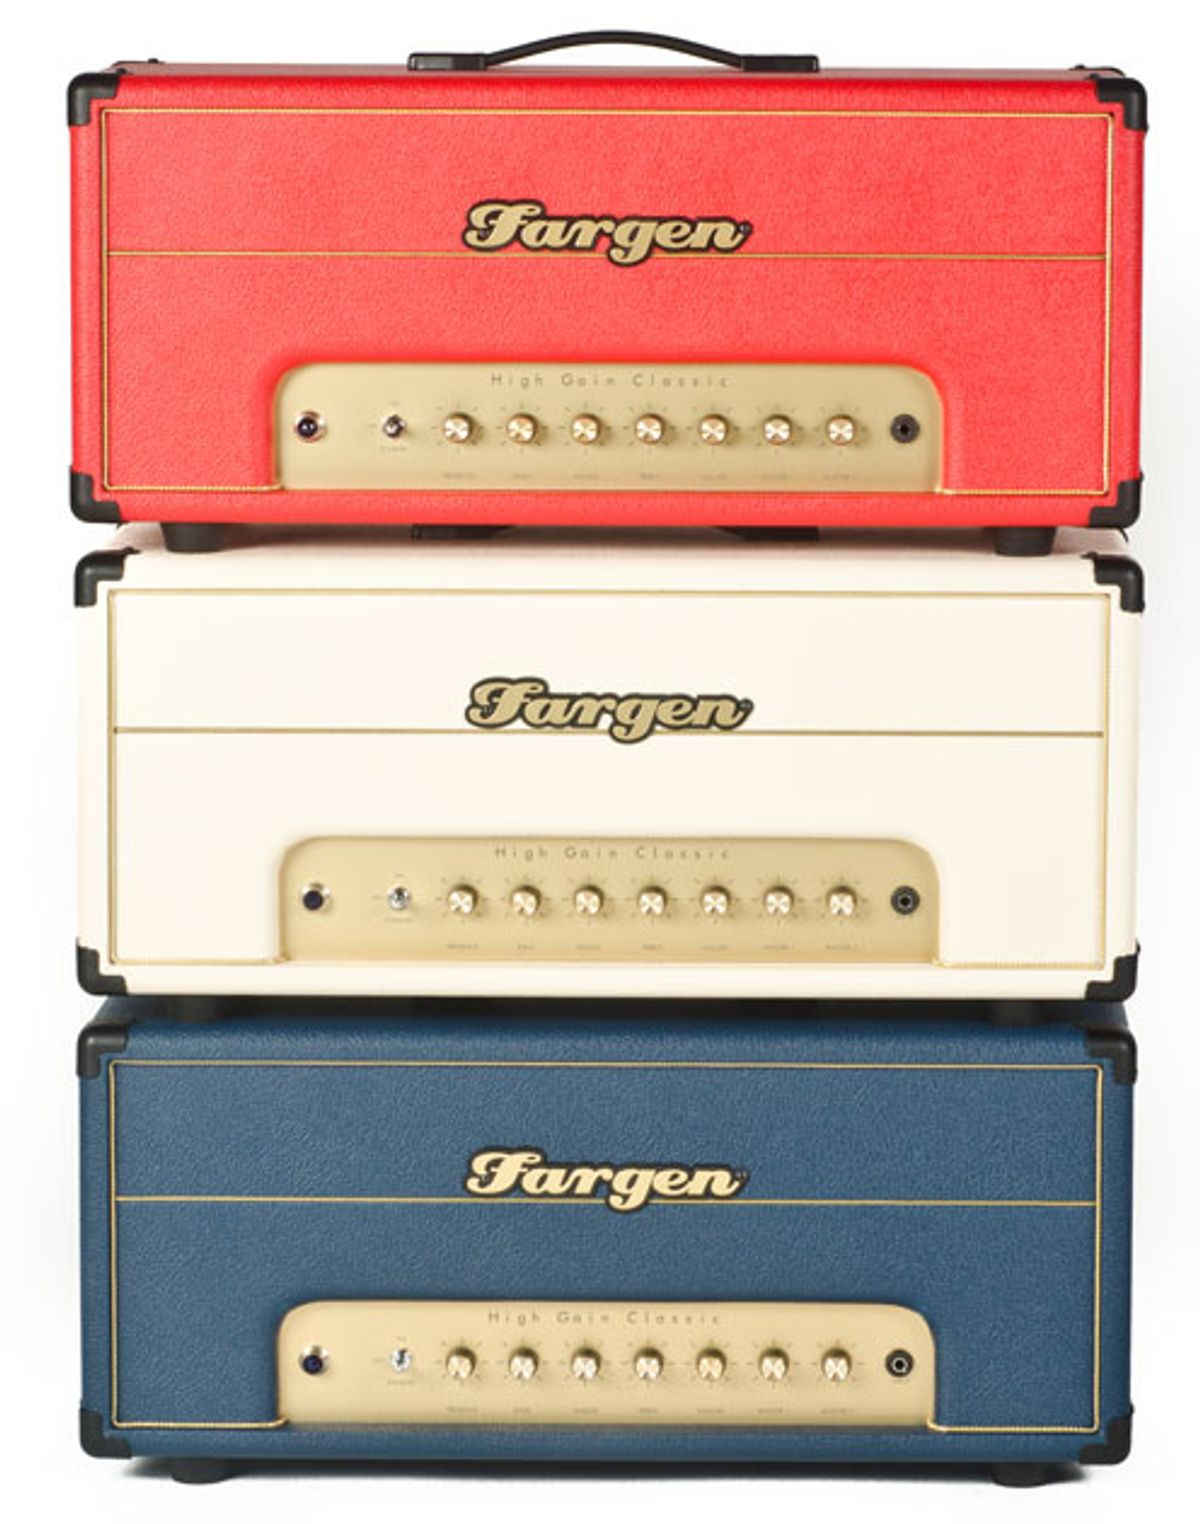 Fargen Amps Launches New 2014 Product Line